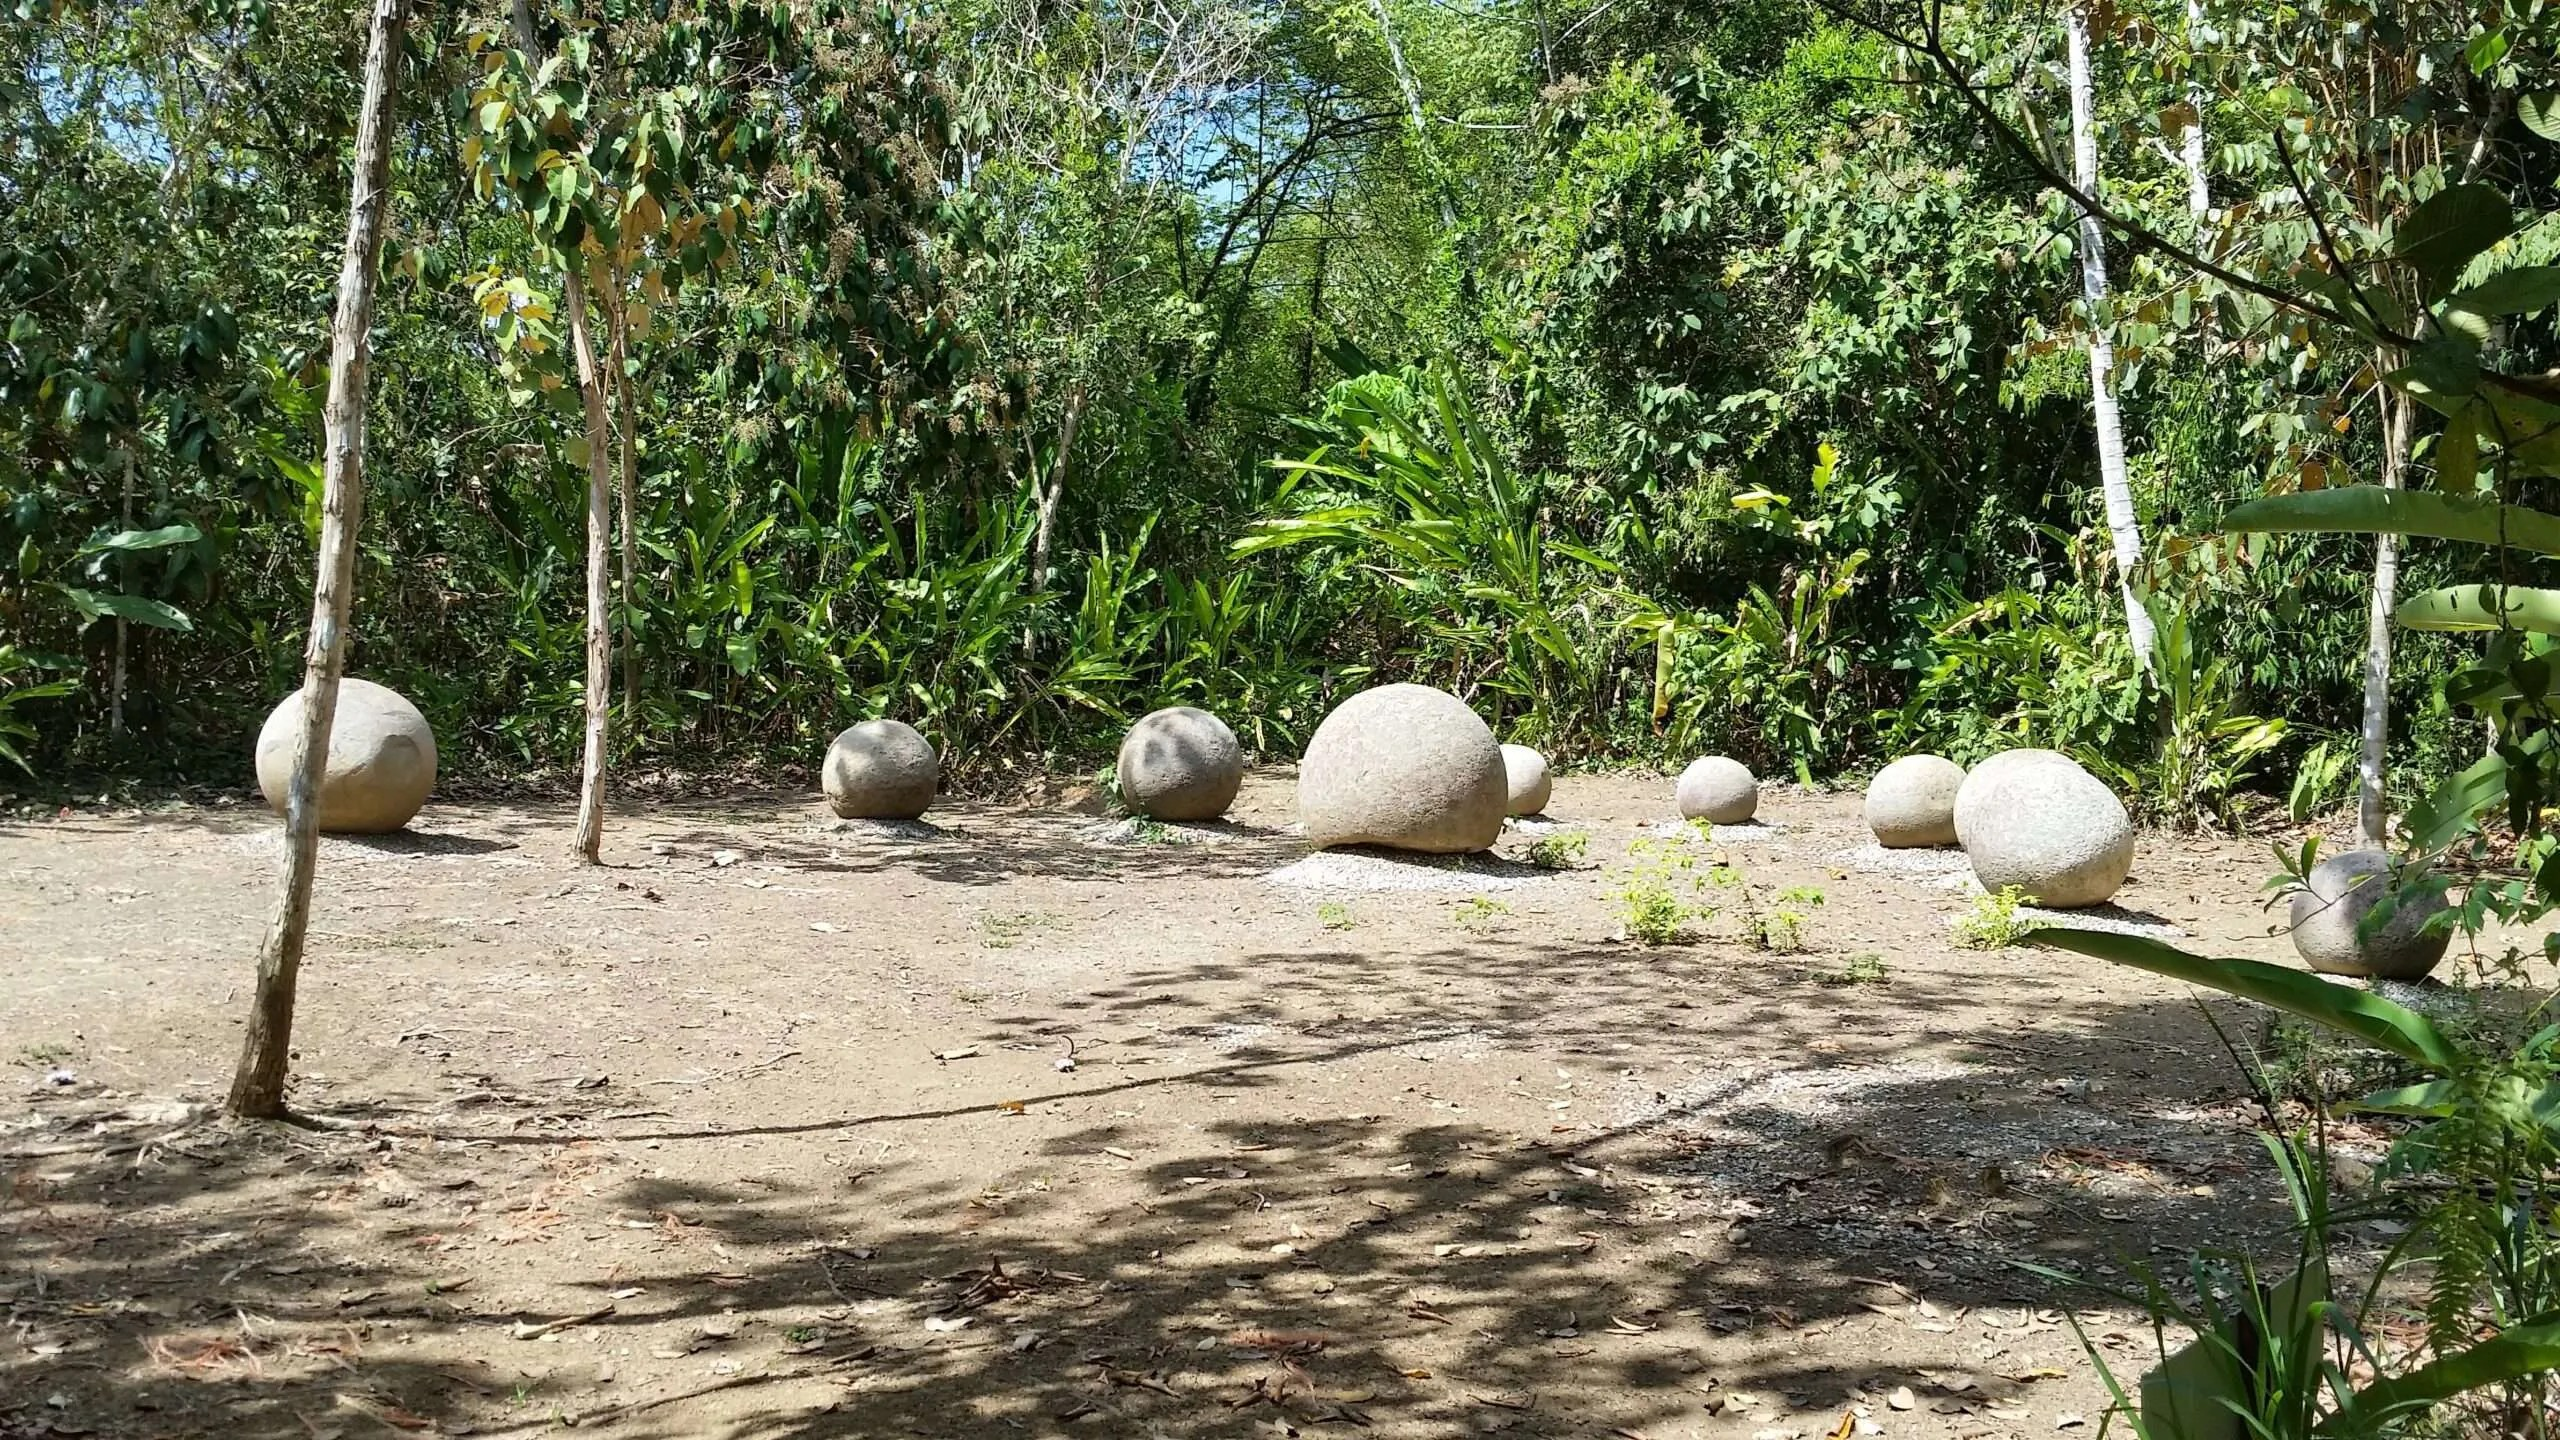 THE DIQUIS STONE SPHERES